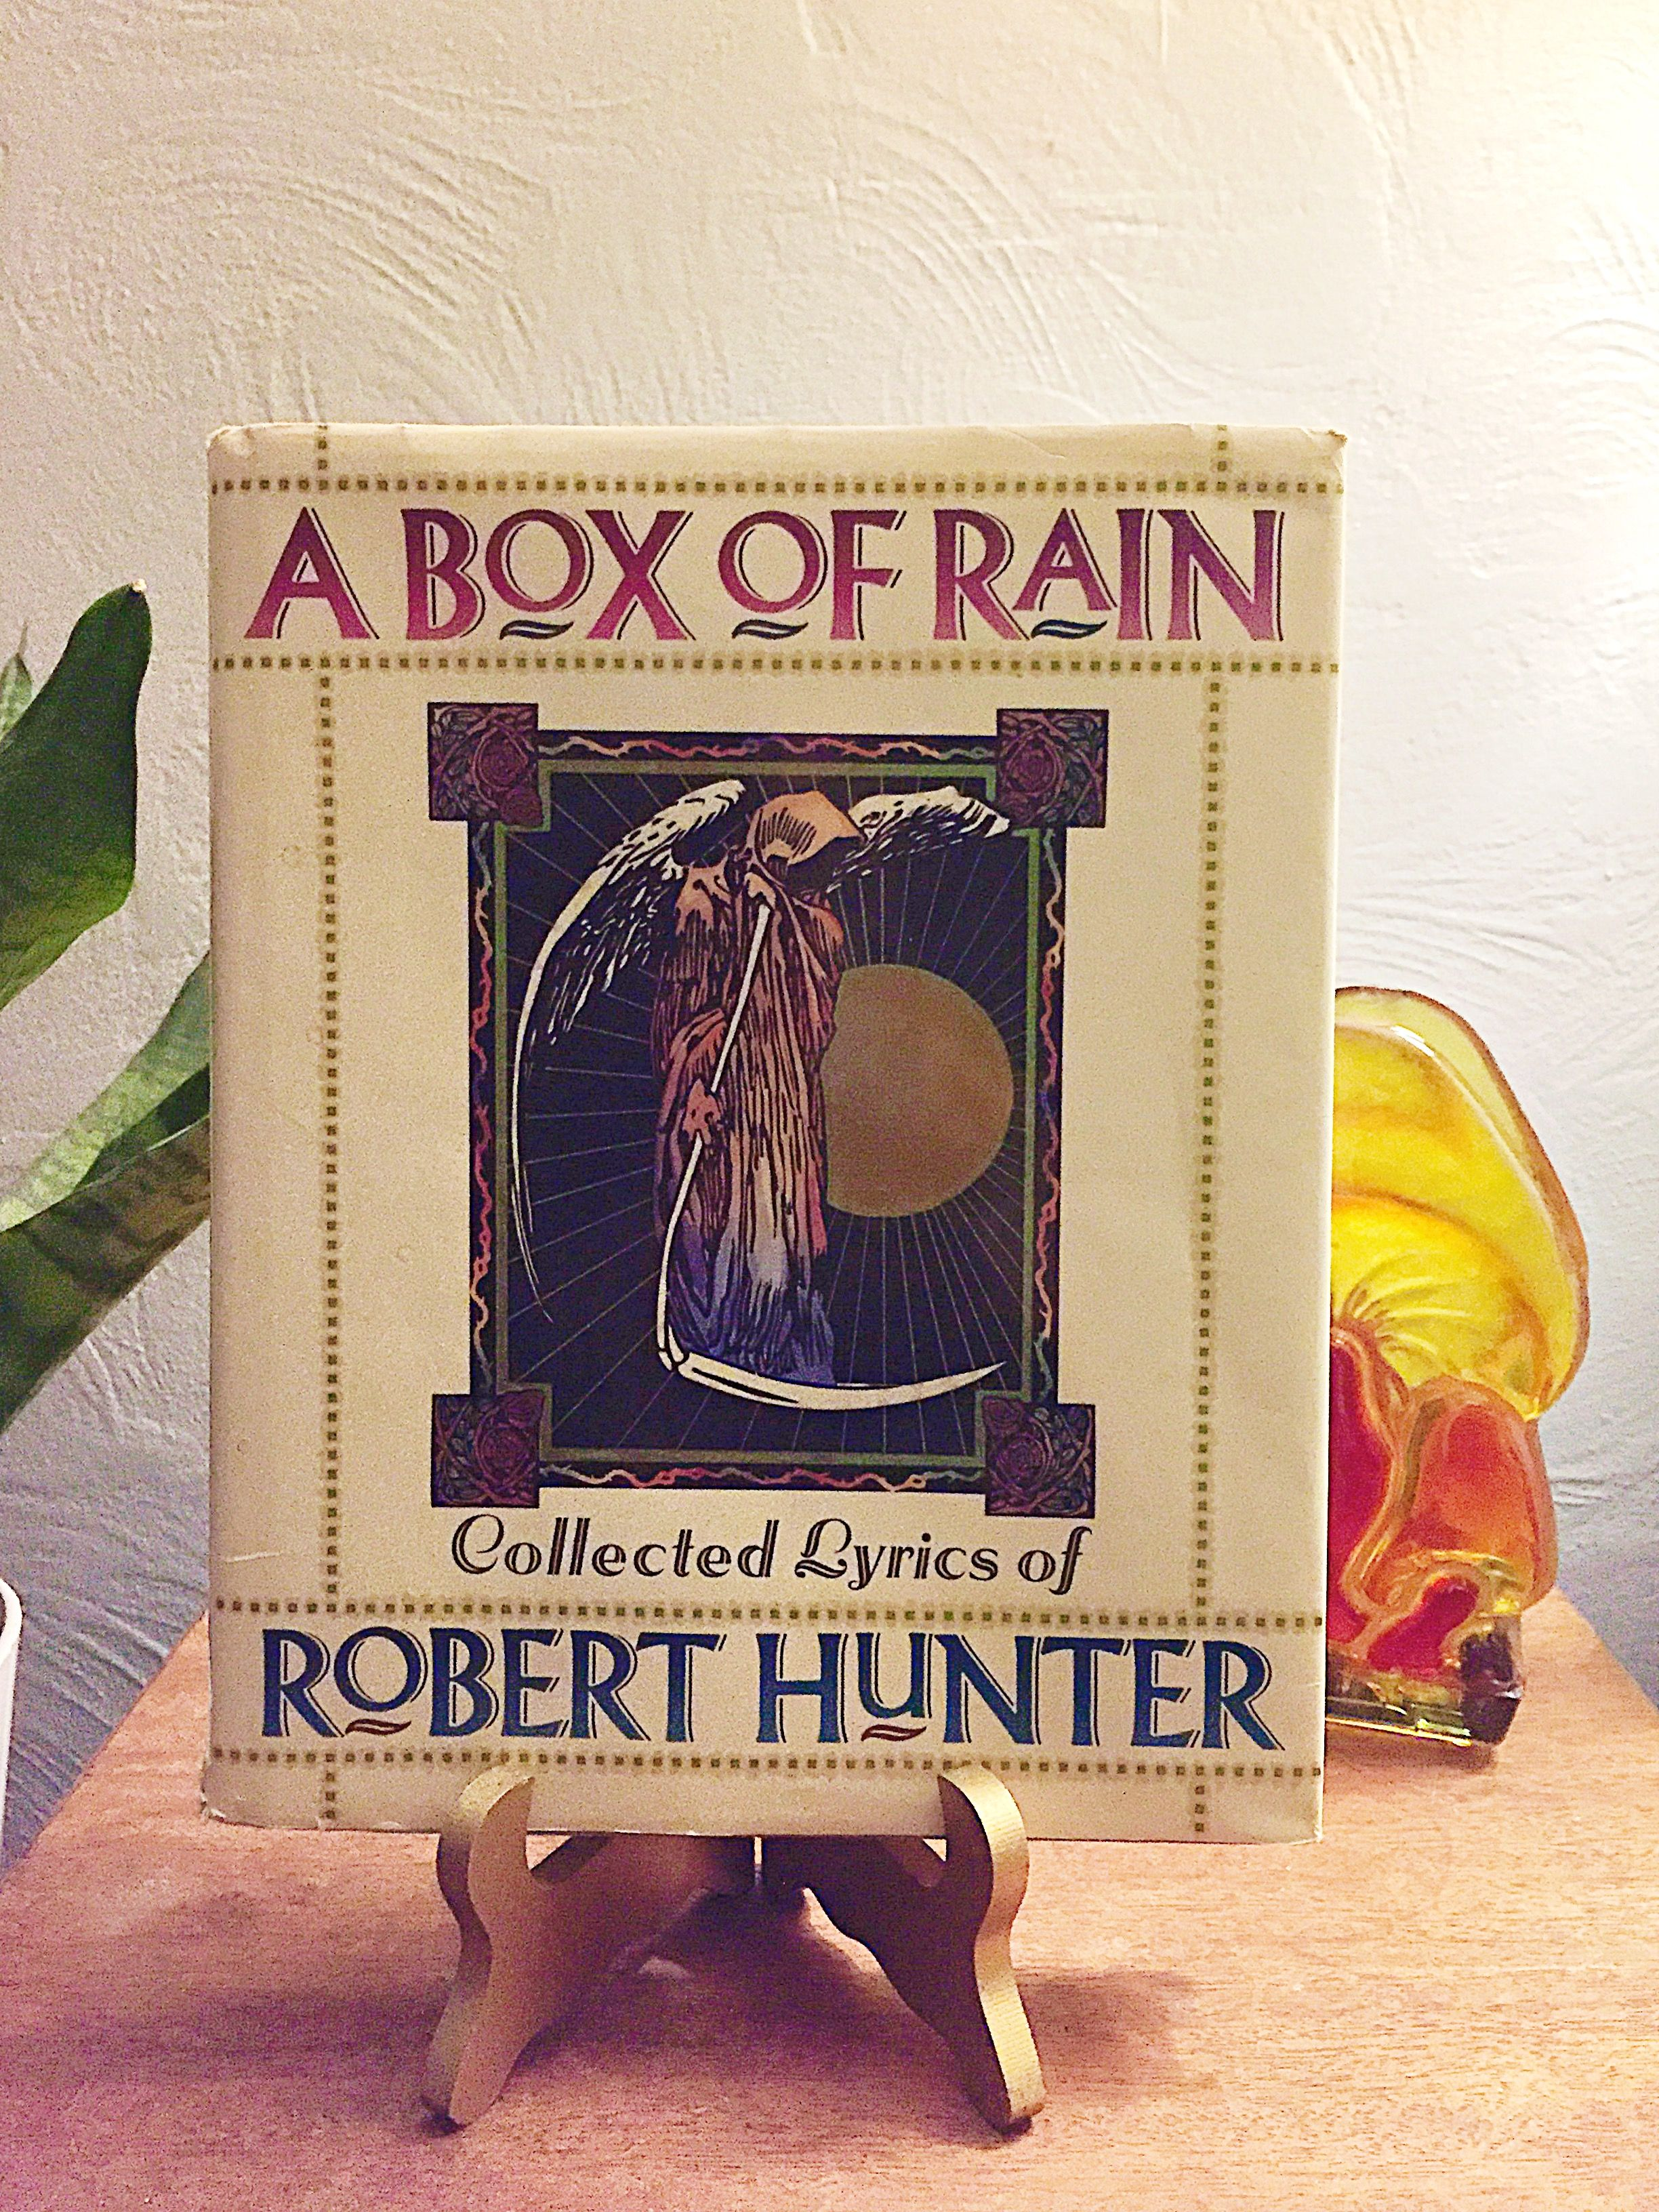 A Box of Rain Collected Lyrics of Robert Hunter is THE